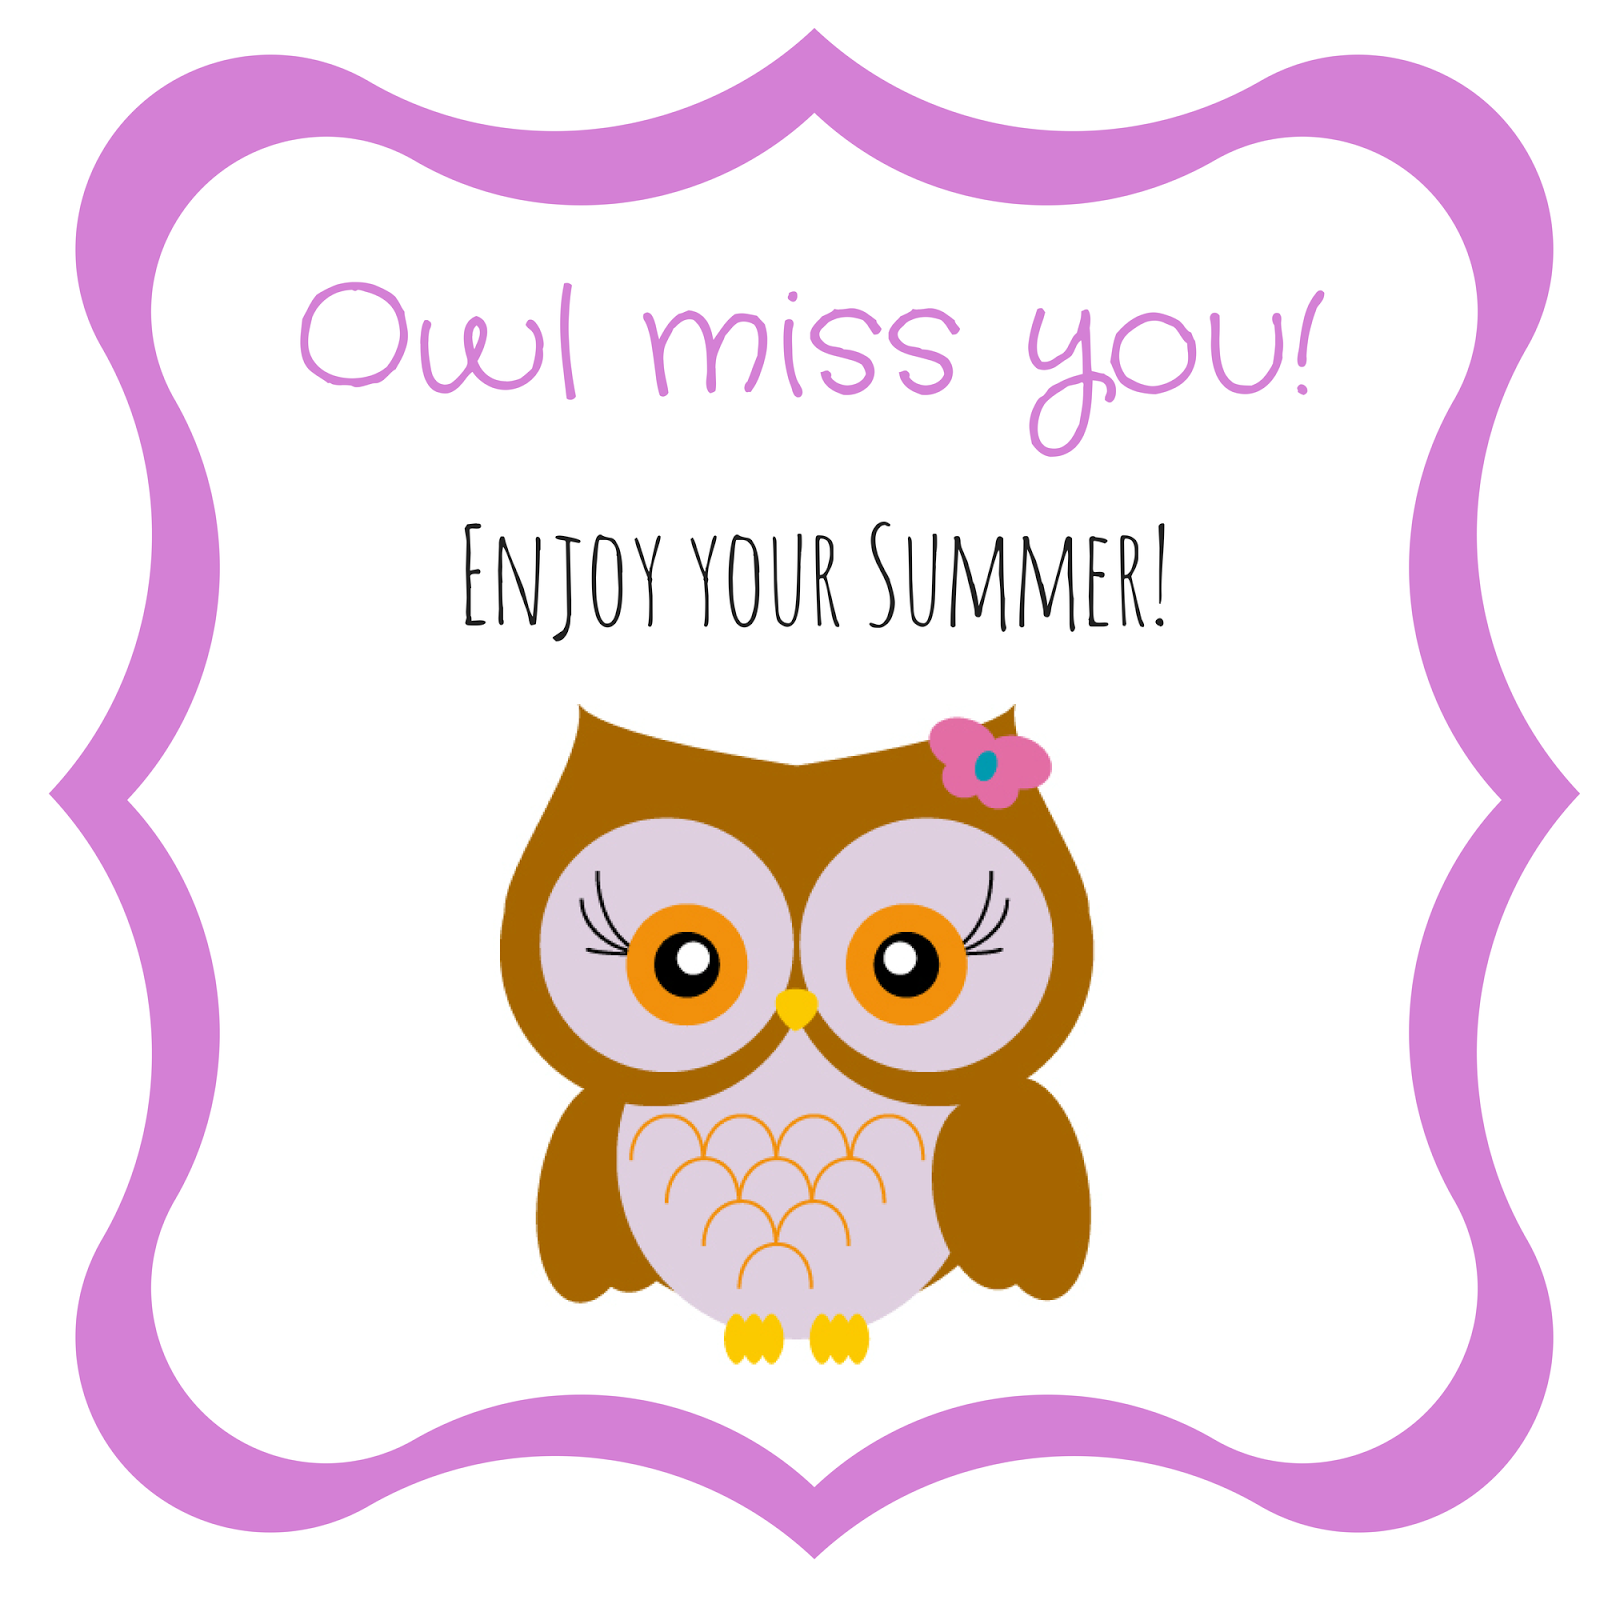 Exceptional image intended for owl miss you printable